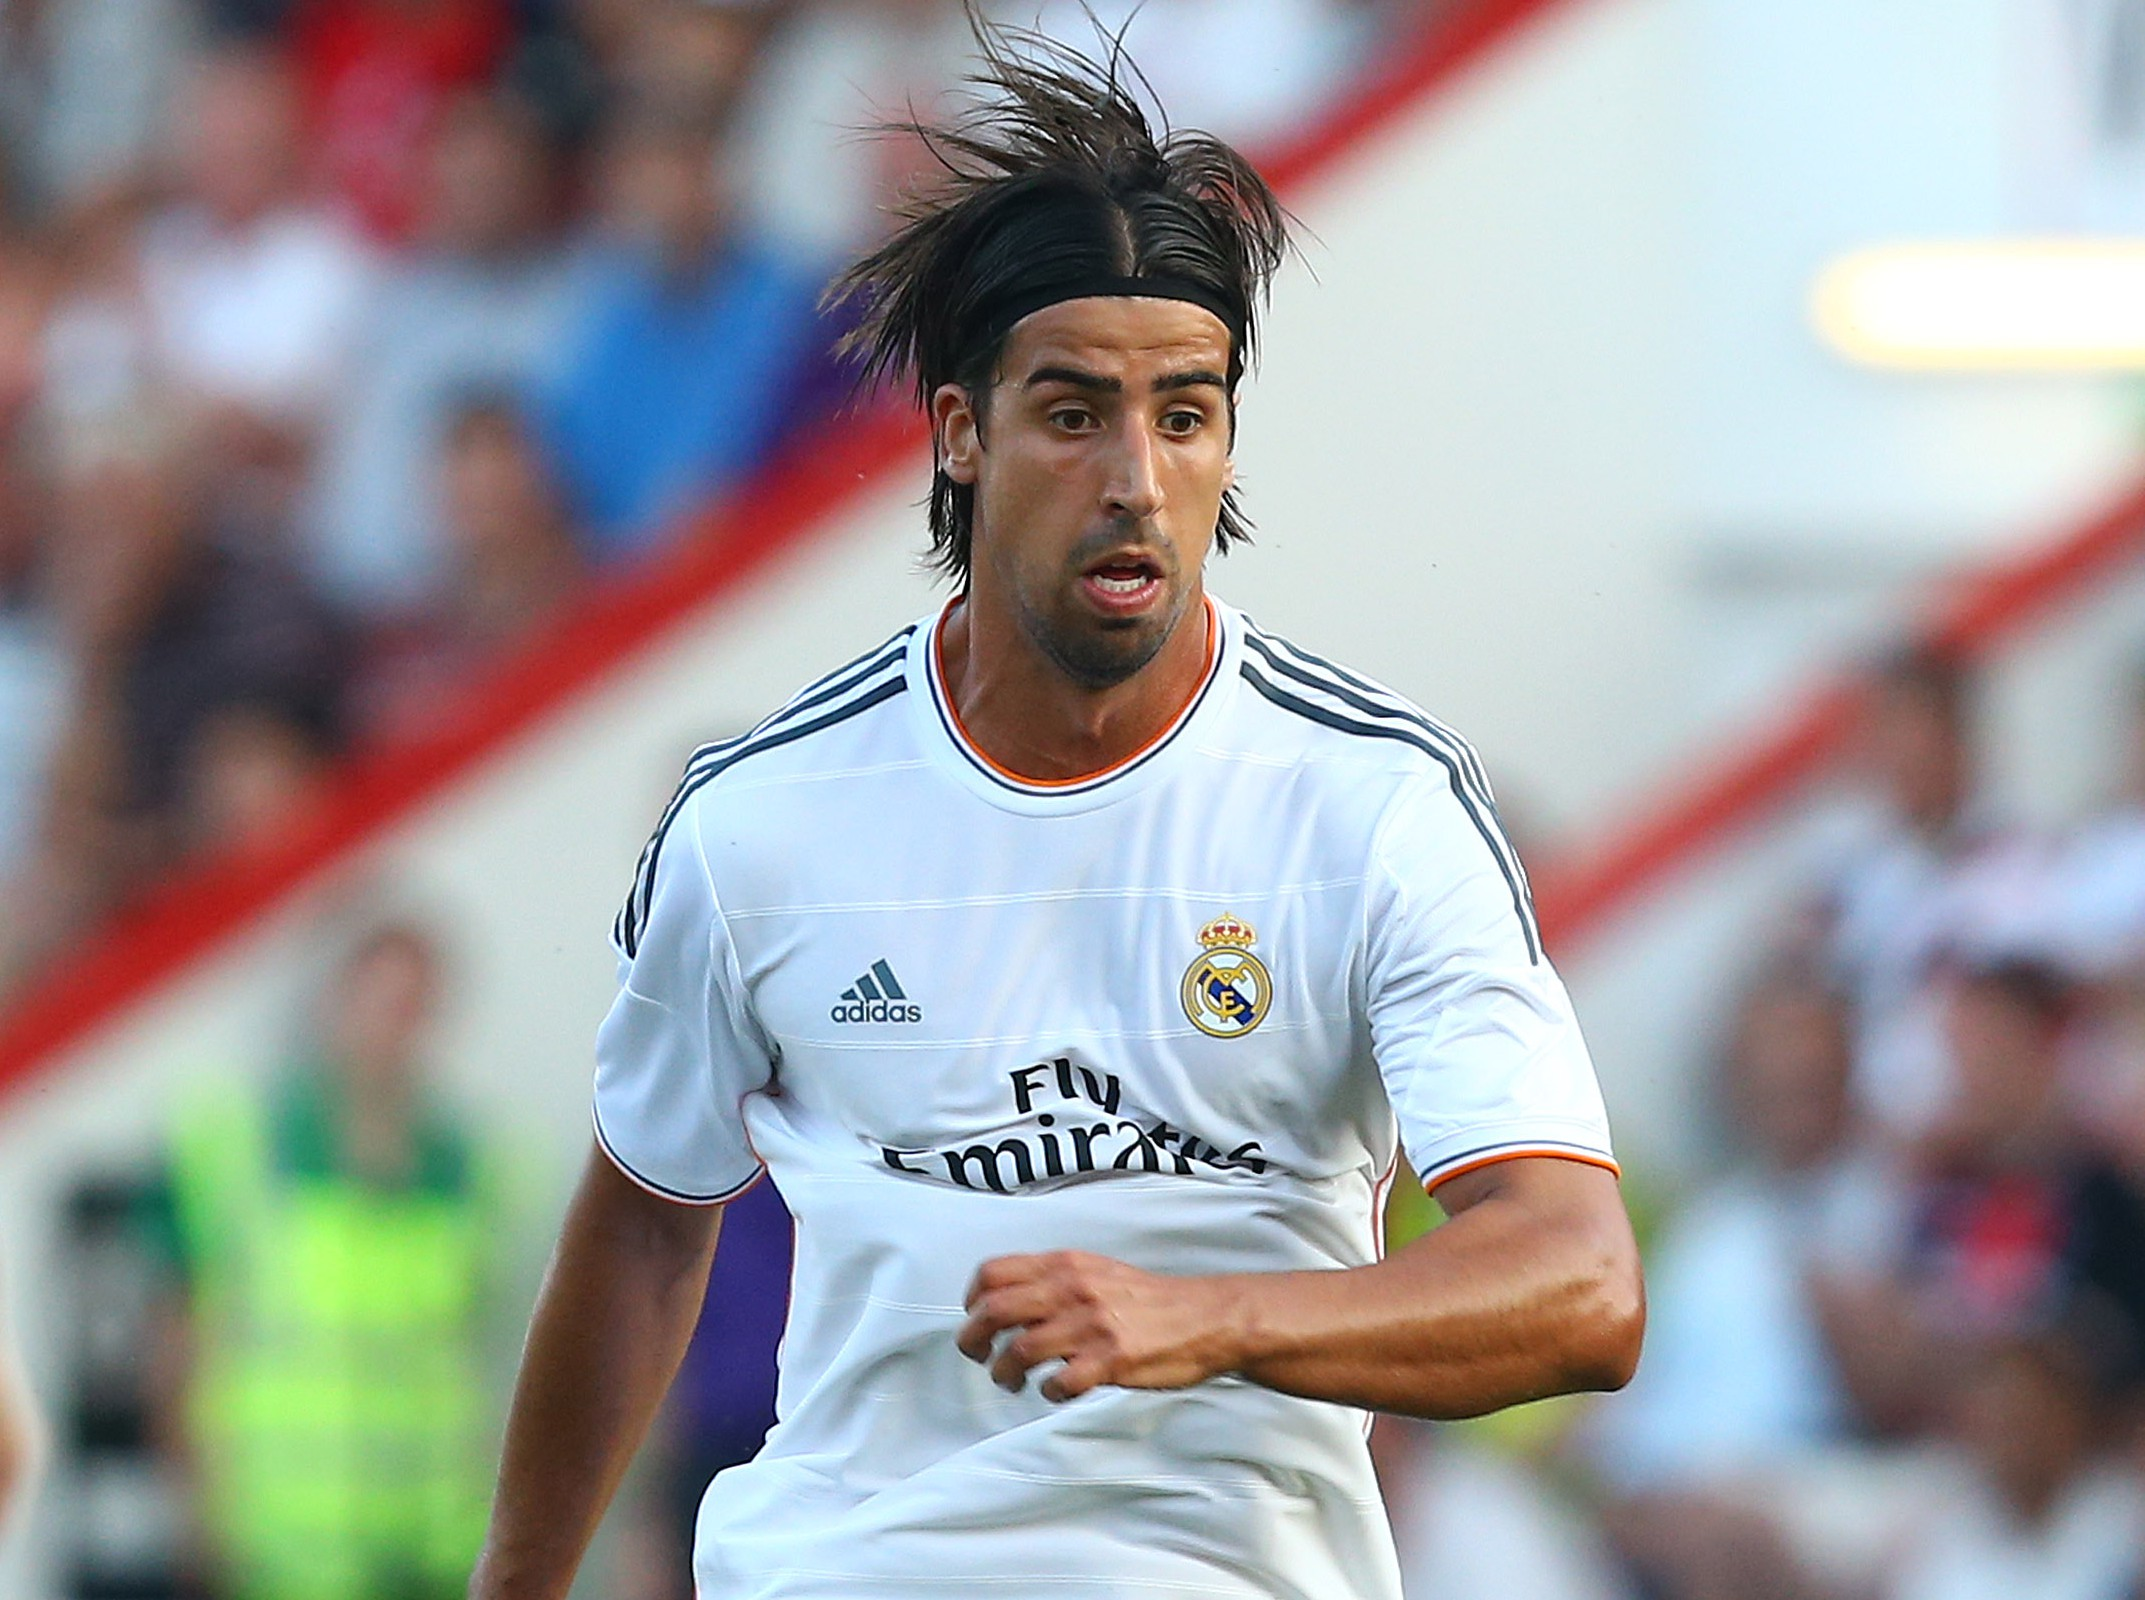 Manchester United 'ready to seal Sami Khedira transfer from Real Madrid, player is interested'